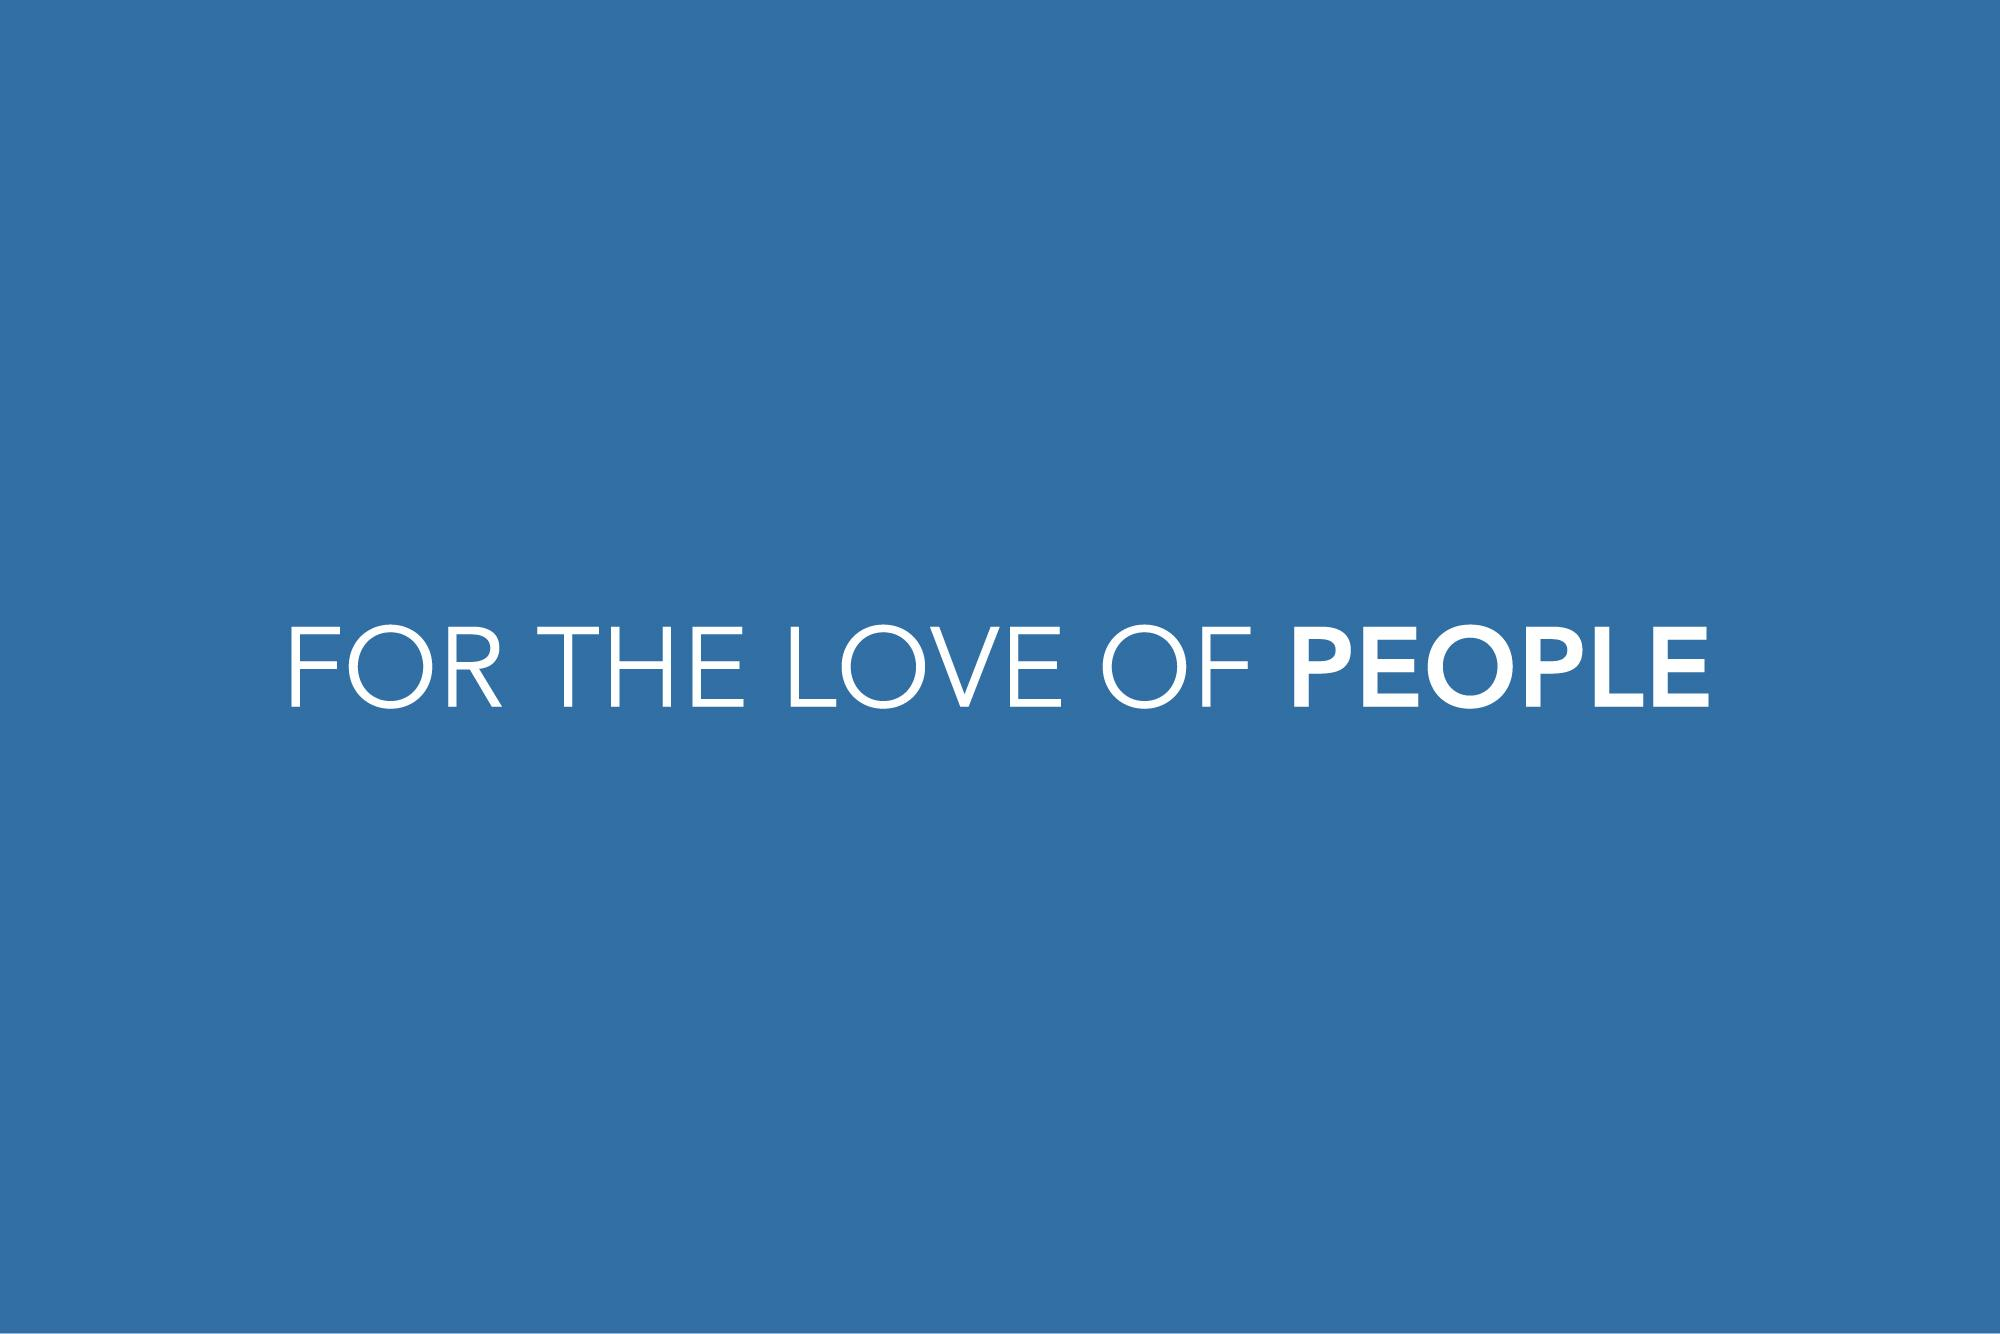 Tagline: For the Love of People